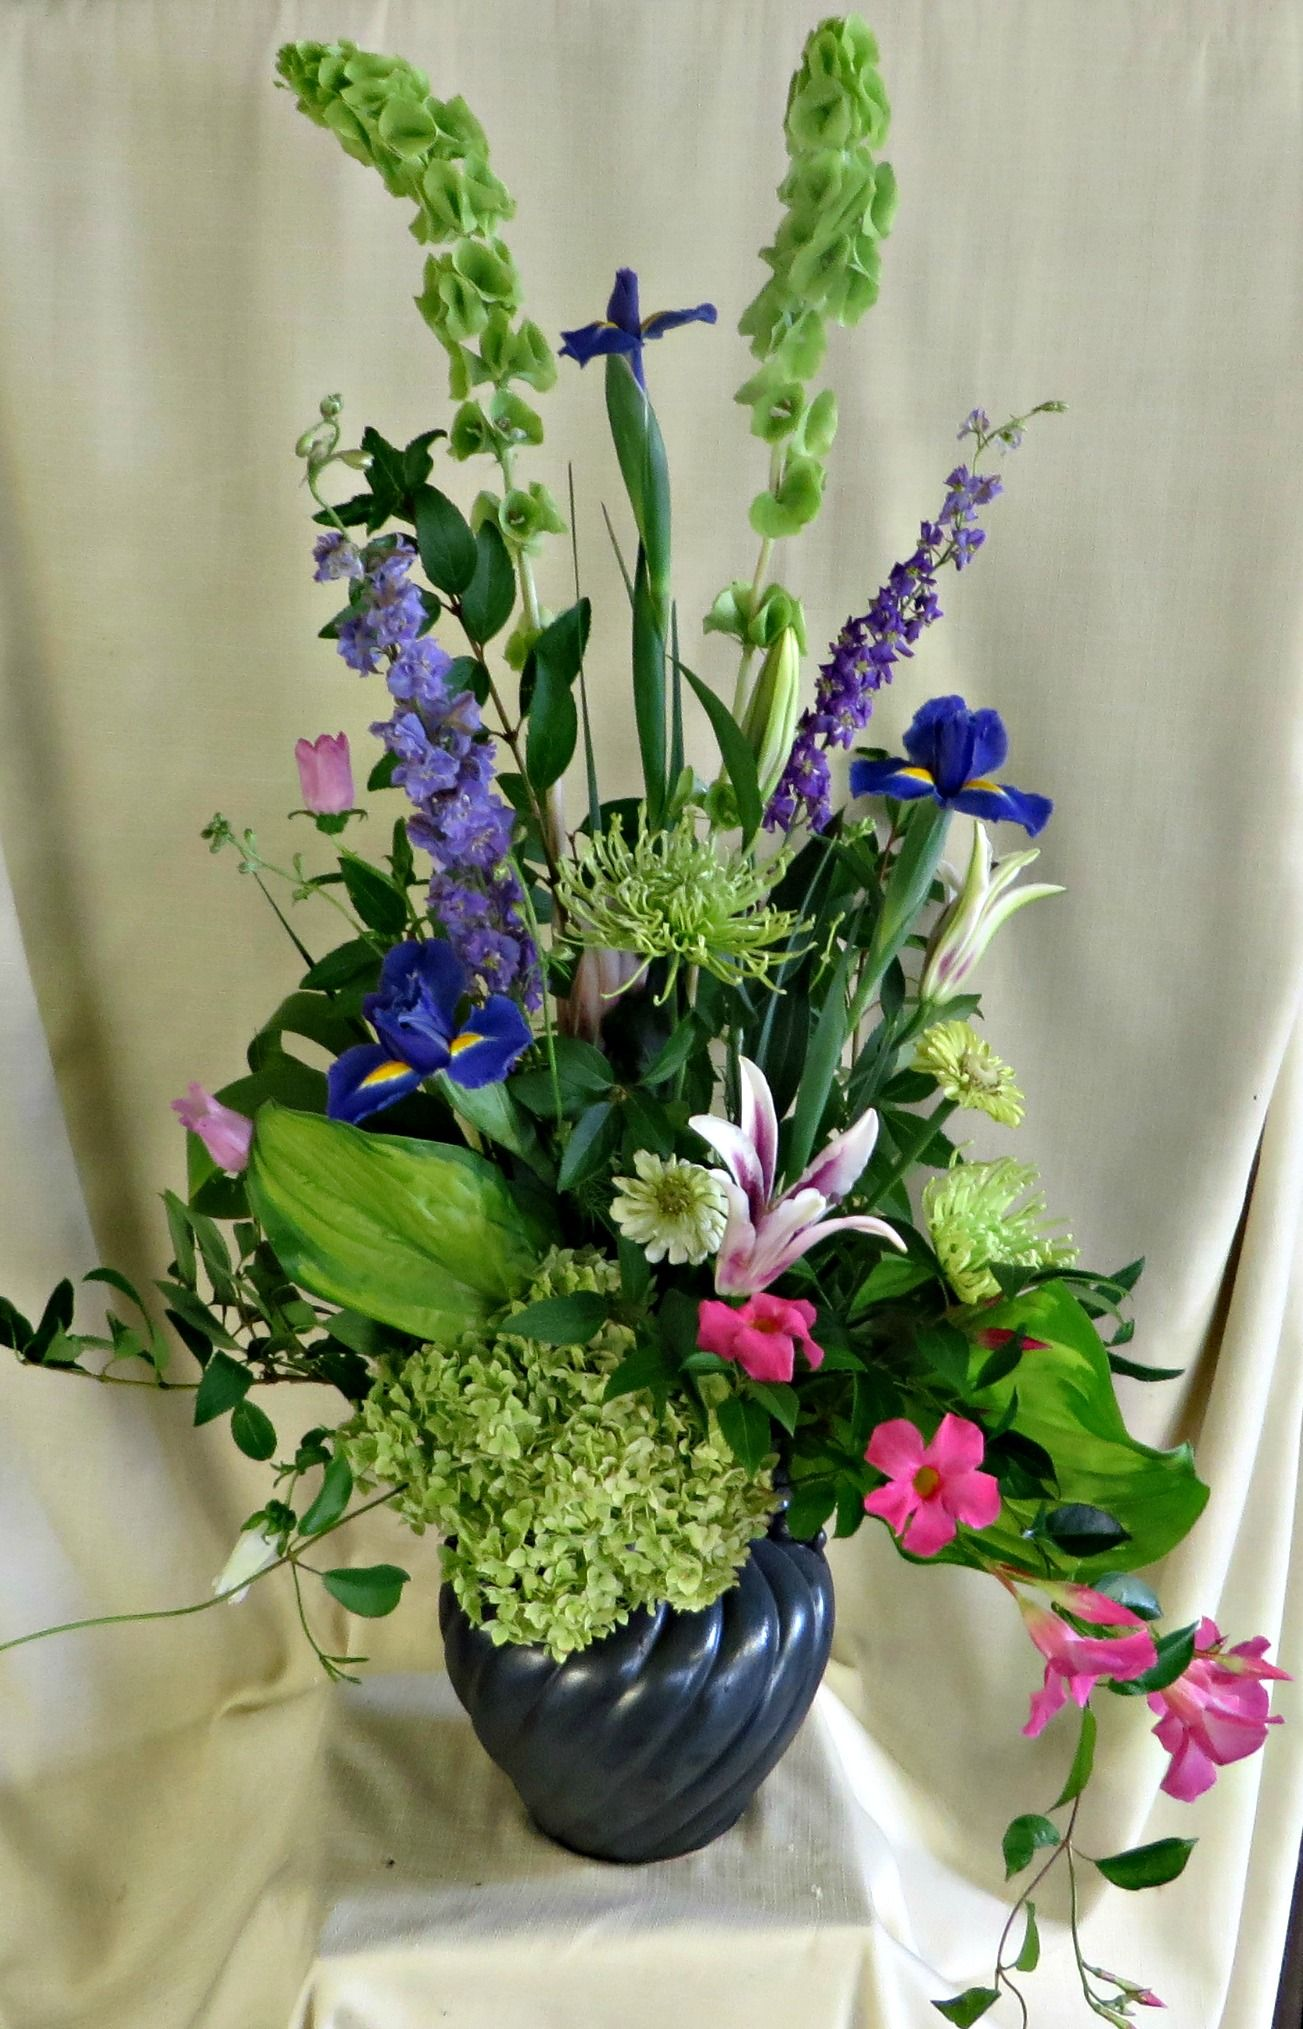 Funeral flowers urn with lilies bells of ireland larkspur iris funeral flowers urn with lilies bells of ireland larkspur iris and hydrangea izmirmasajfo